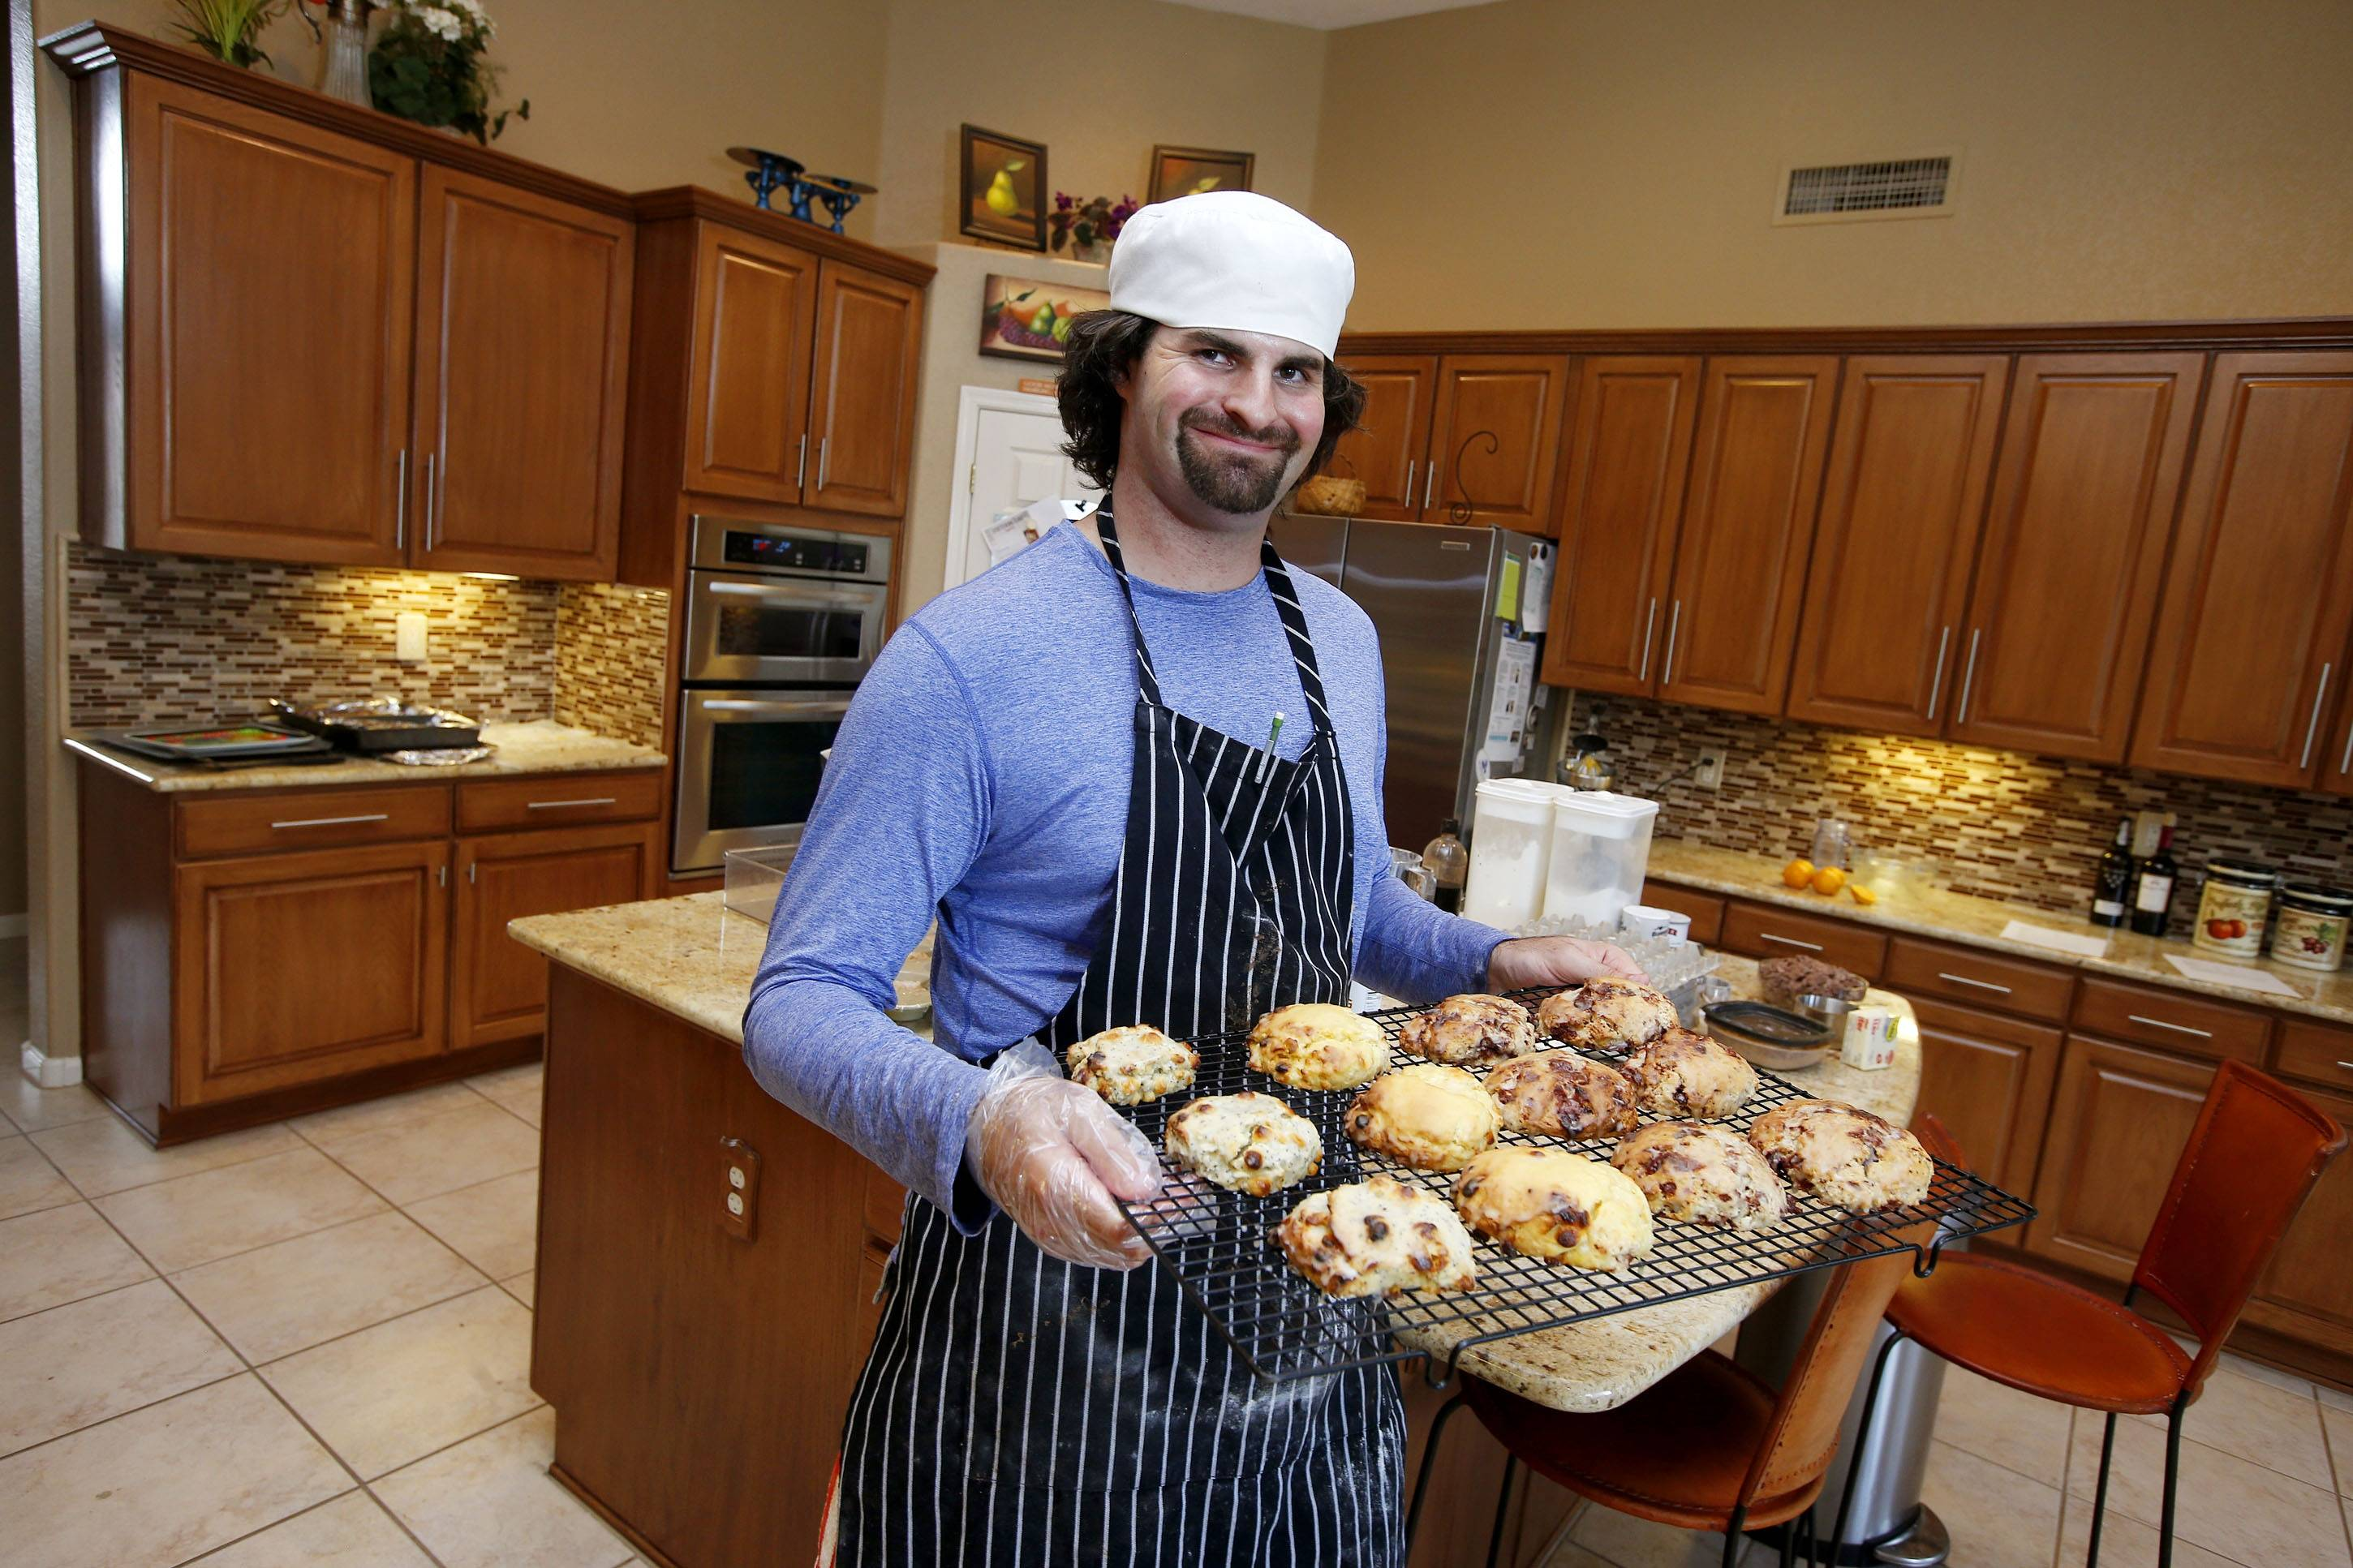 In this July 15, 2014 photo, Matt Cottle, owner of Stuttering King Bakery, smiles as he holds a tray of his scones in his parents' kitchen in Scottsdale, Ariz. Cottle is one of a few known small business owners with autism, a brain disorder that affects a person's ability to comprehend, communicate and interact socially.